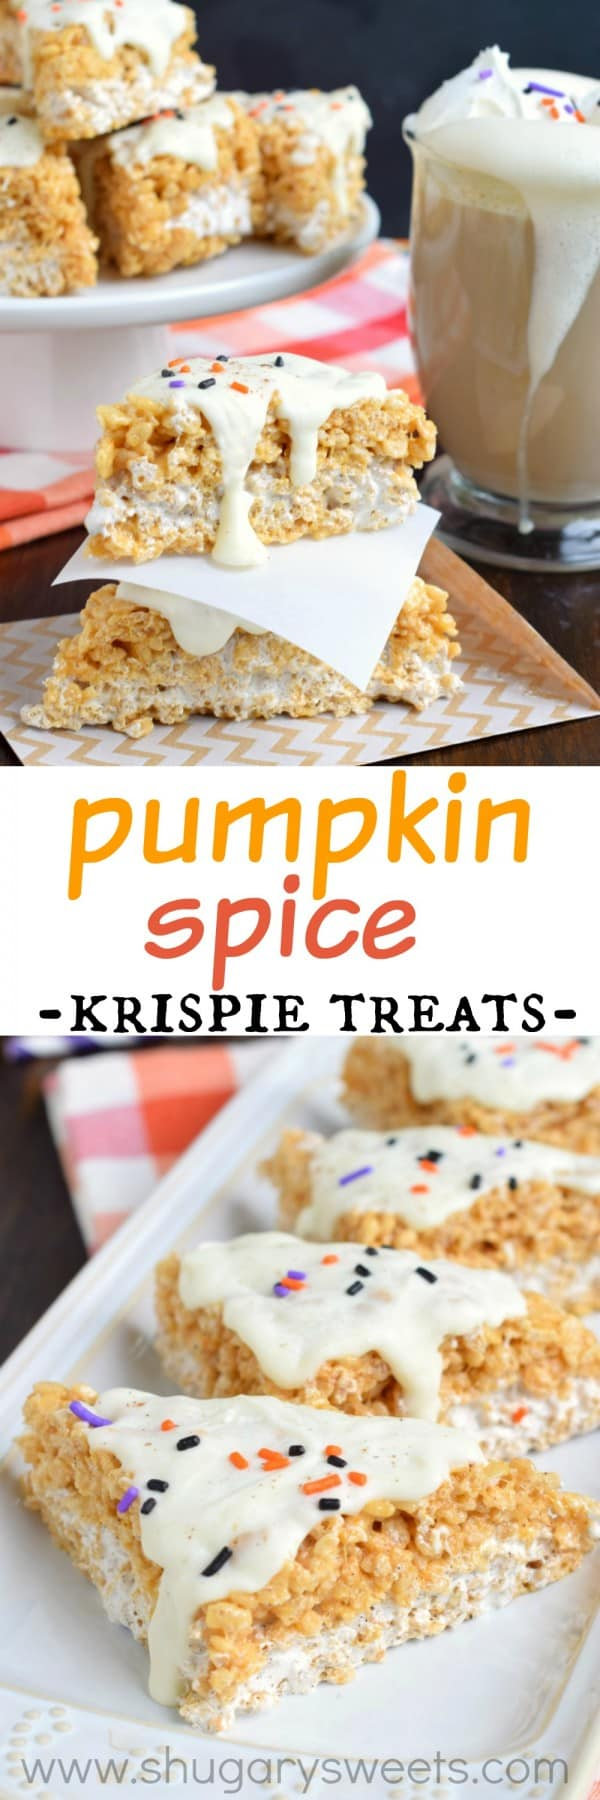 Chewy Pumpkin Spice Latte Krispie Treats with all the delicious fall flavors. And a pinch of espresso for good measure!